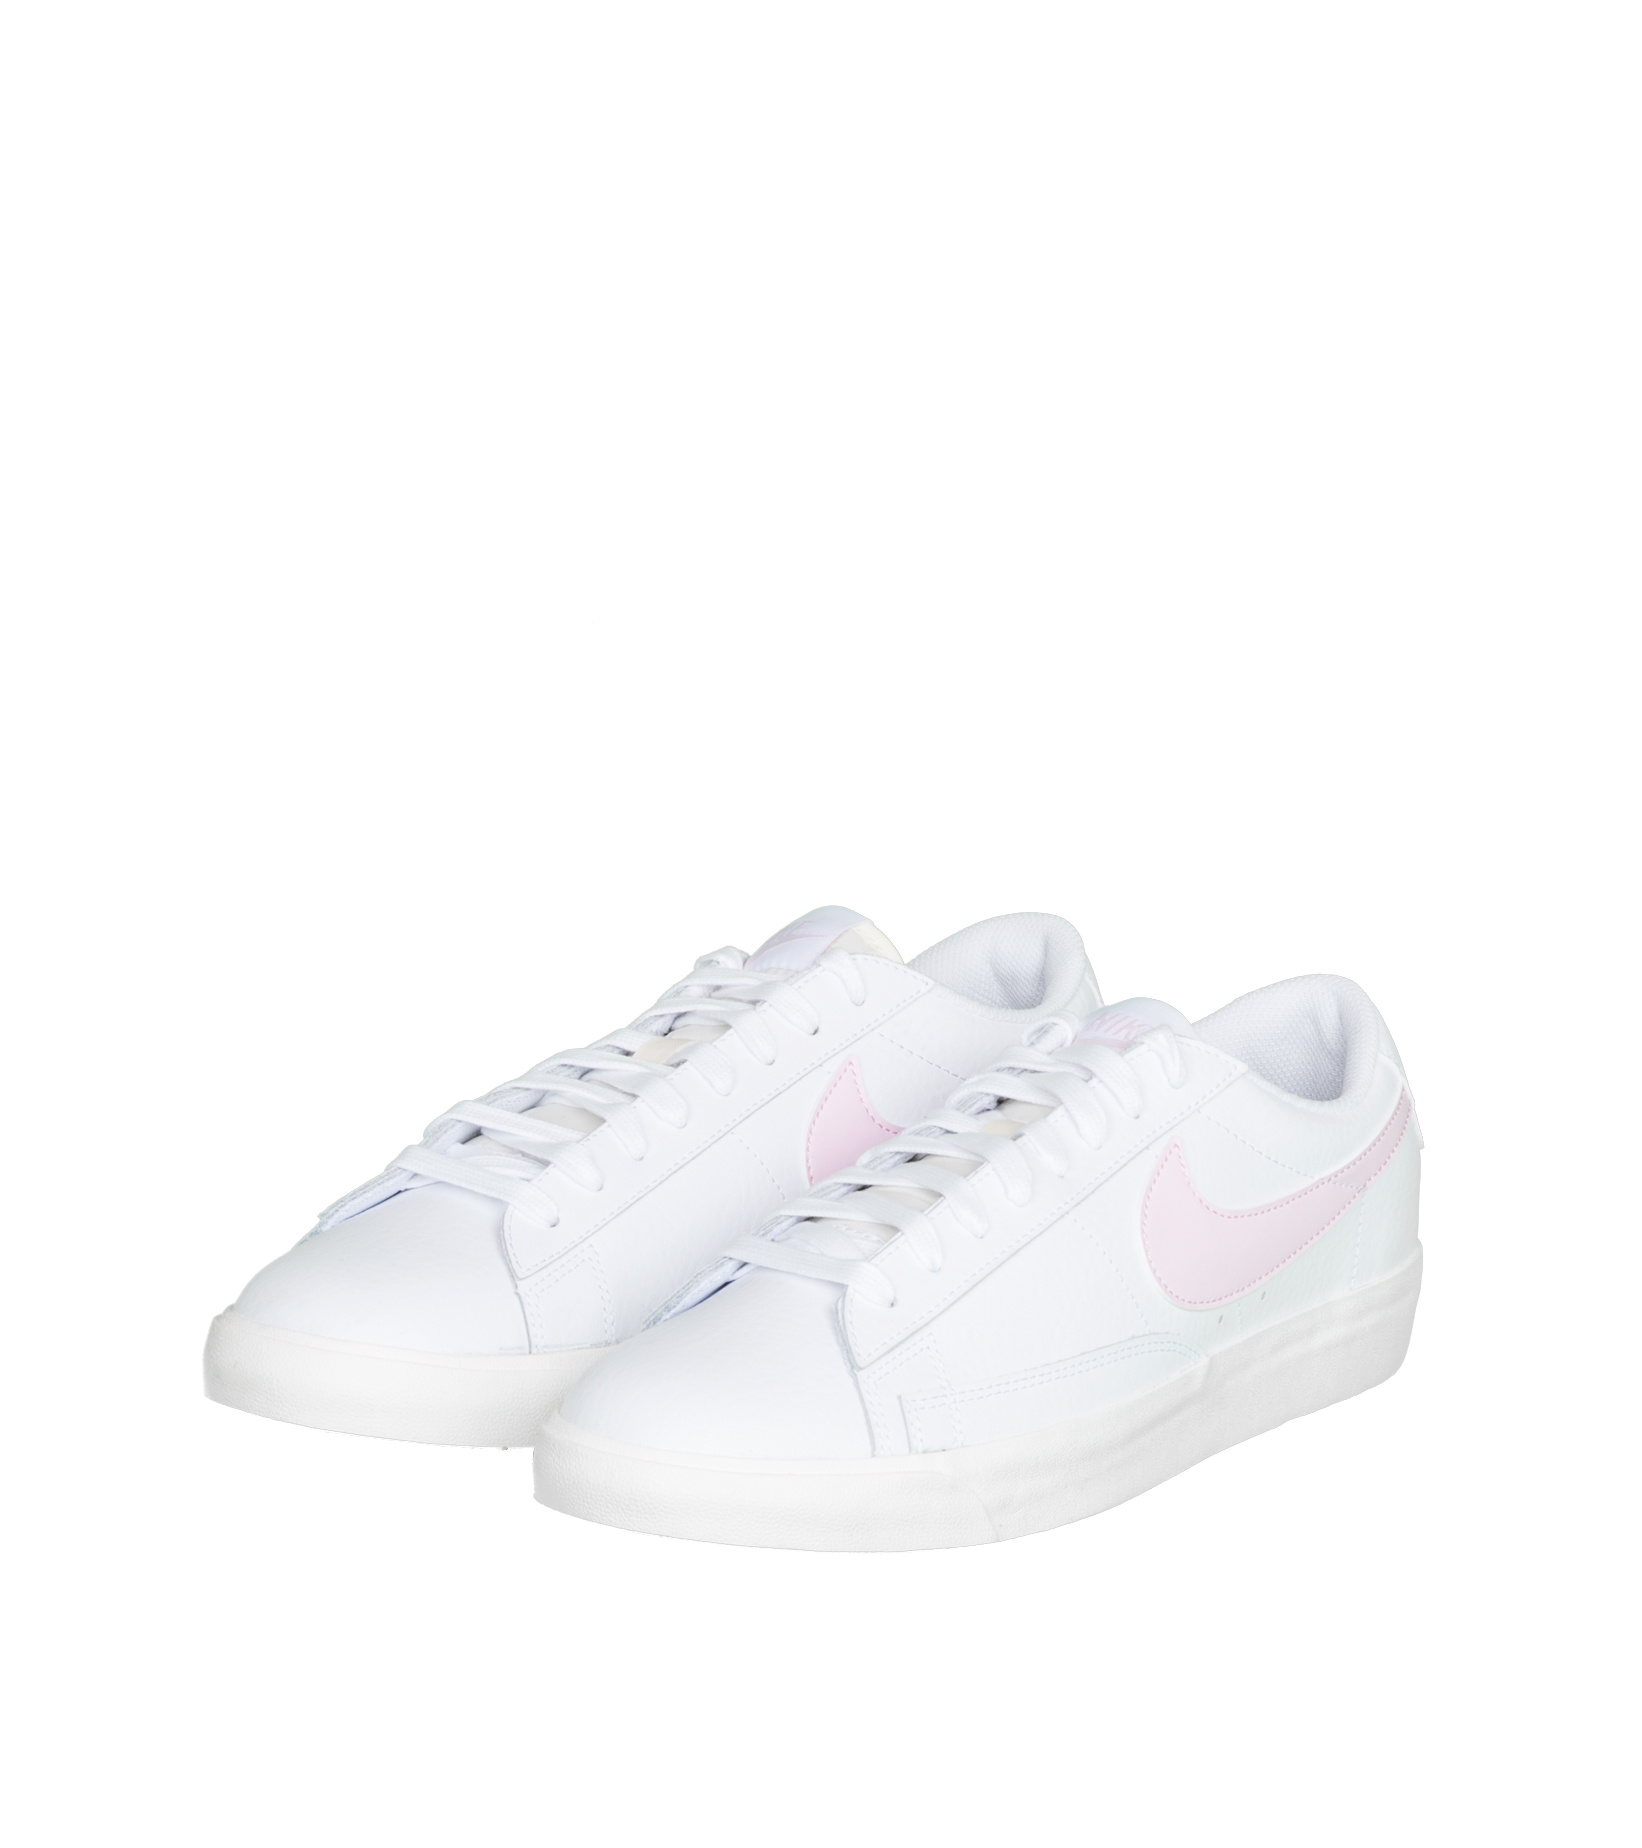 "Blazer Low Leather ""White/Pink Foam""-1"